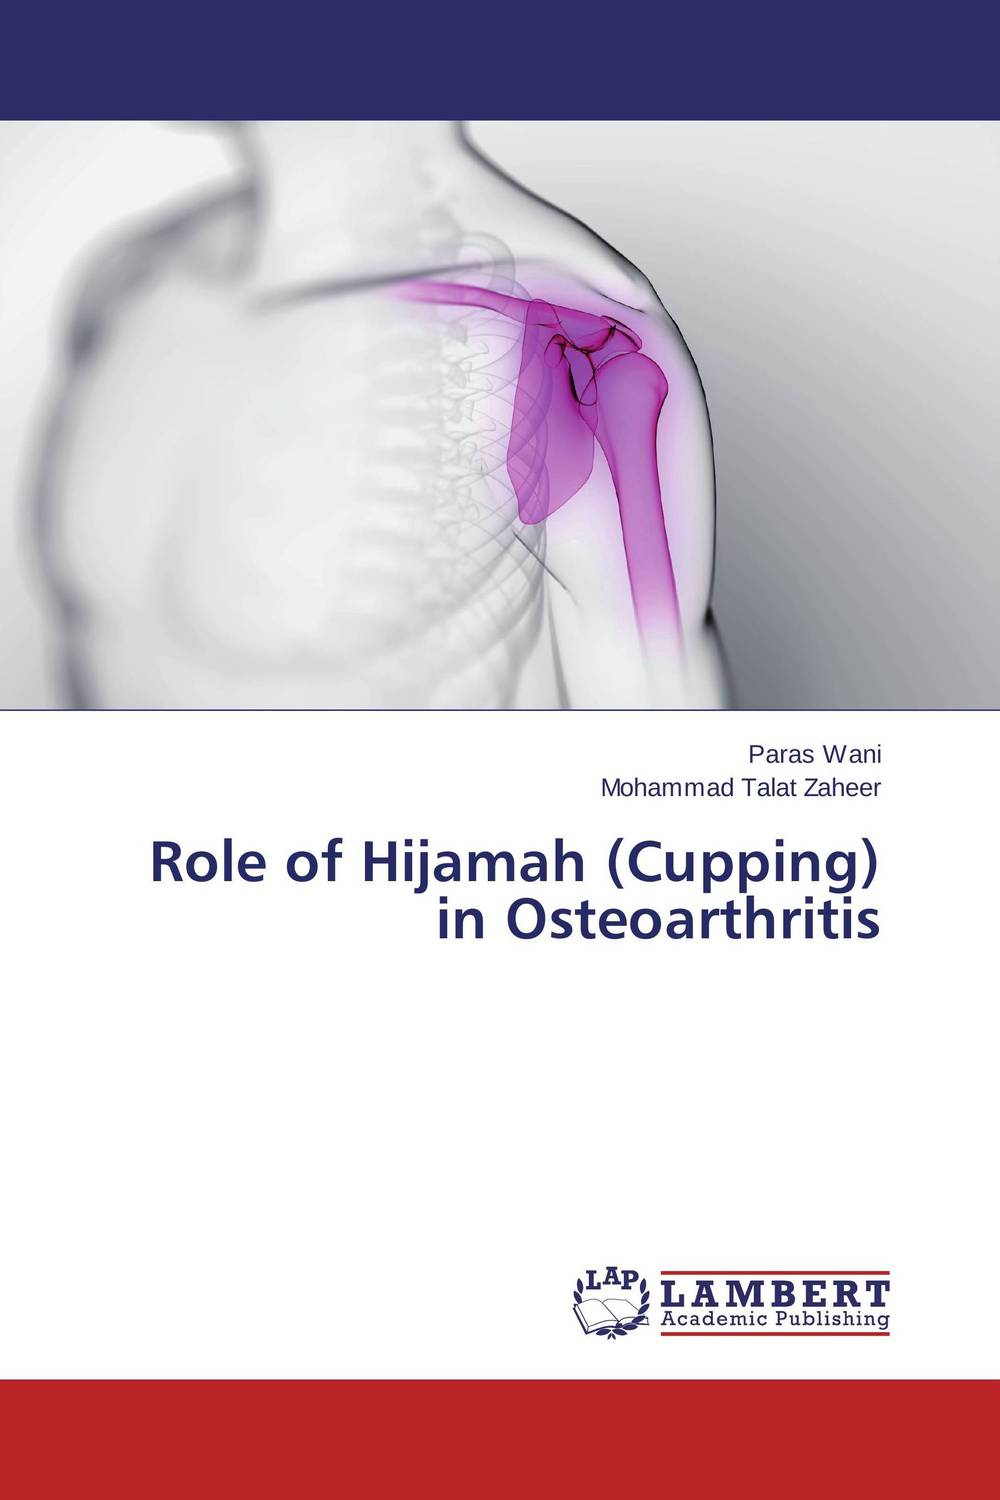 Role of Hijamah (Cupping) in Osteoarthritis health protection pure natural bamboo jar of cupping a suit bamboo cupping to spill cupping apparatus body massager